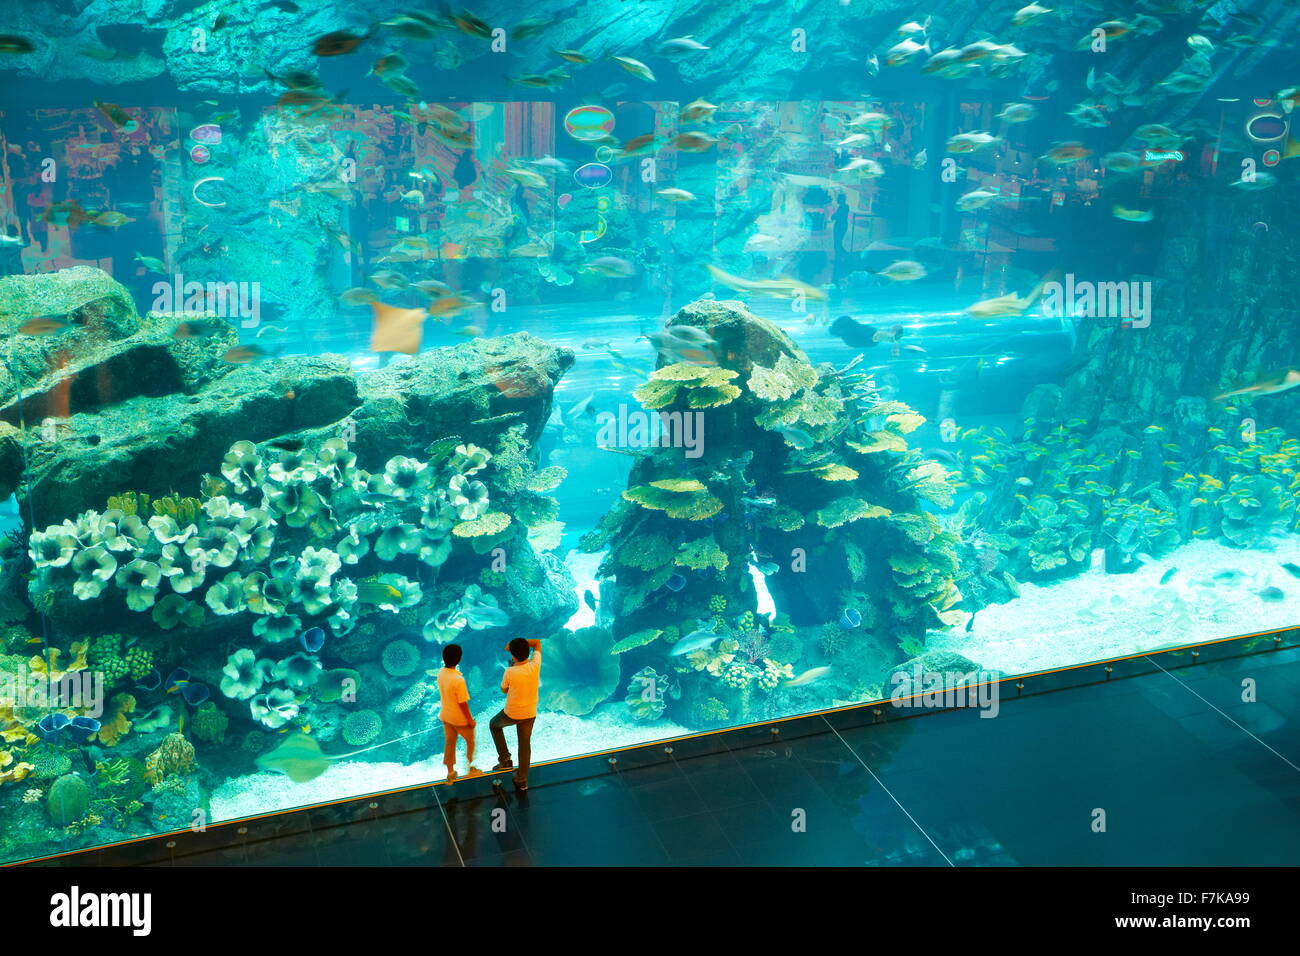 Children looking at The Dubai Mall Aquarium, Dubai, United Arab Emirates, Middle East - Stock Image